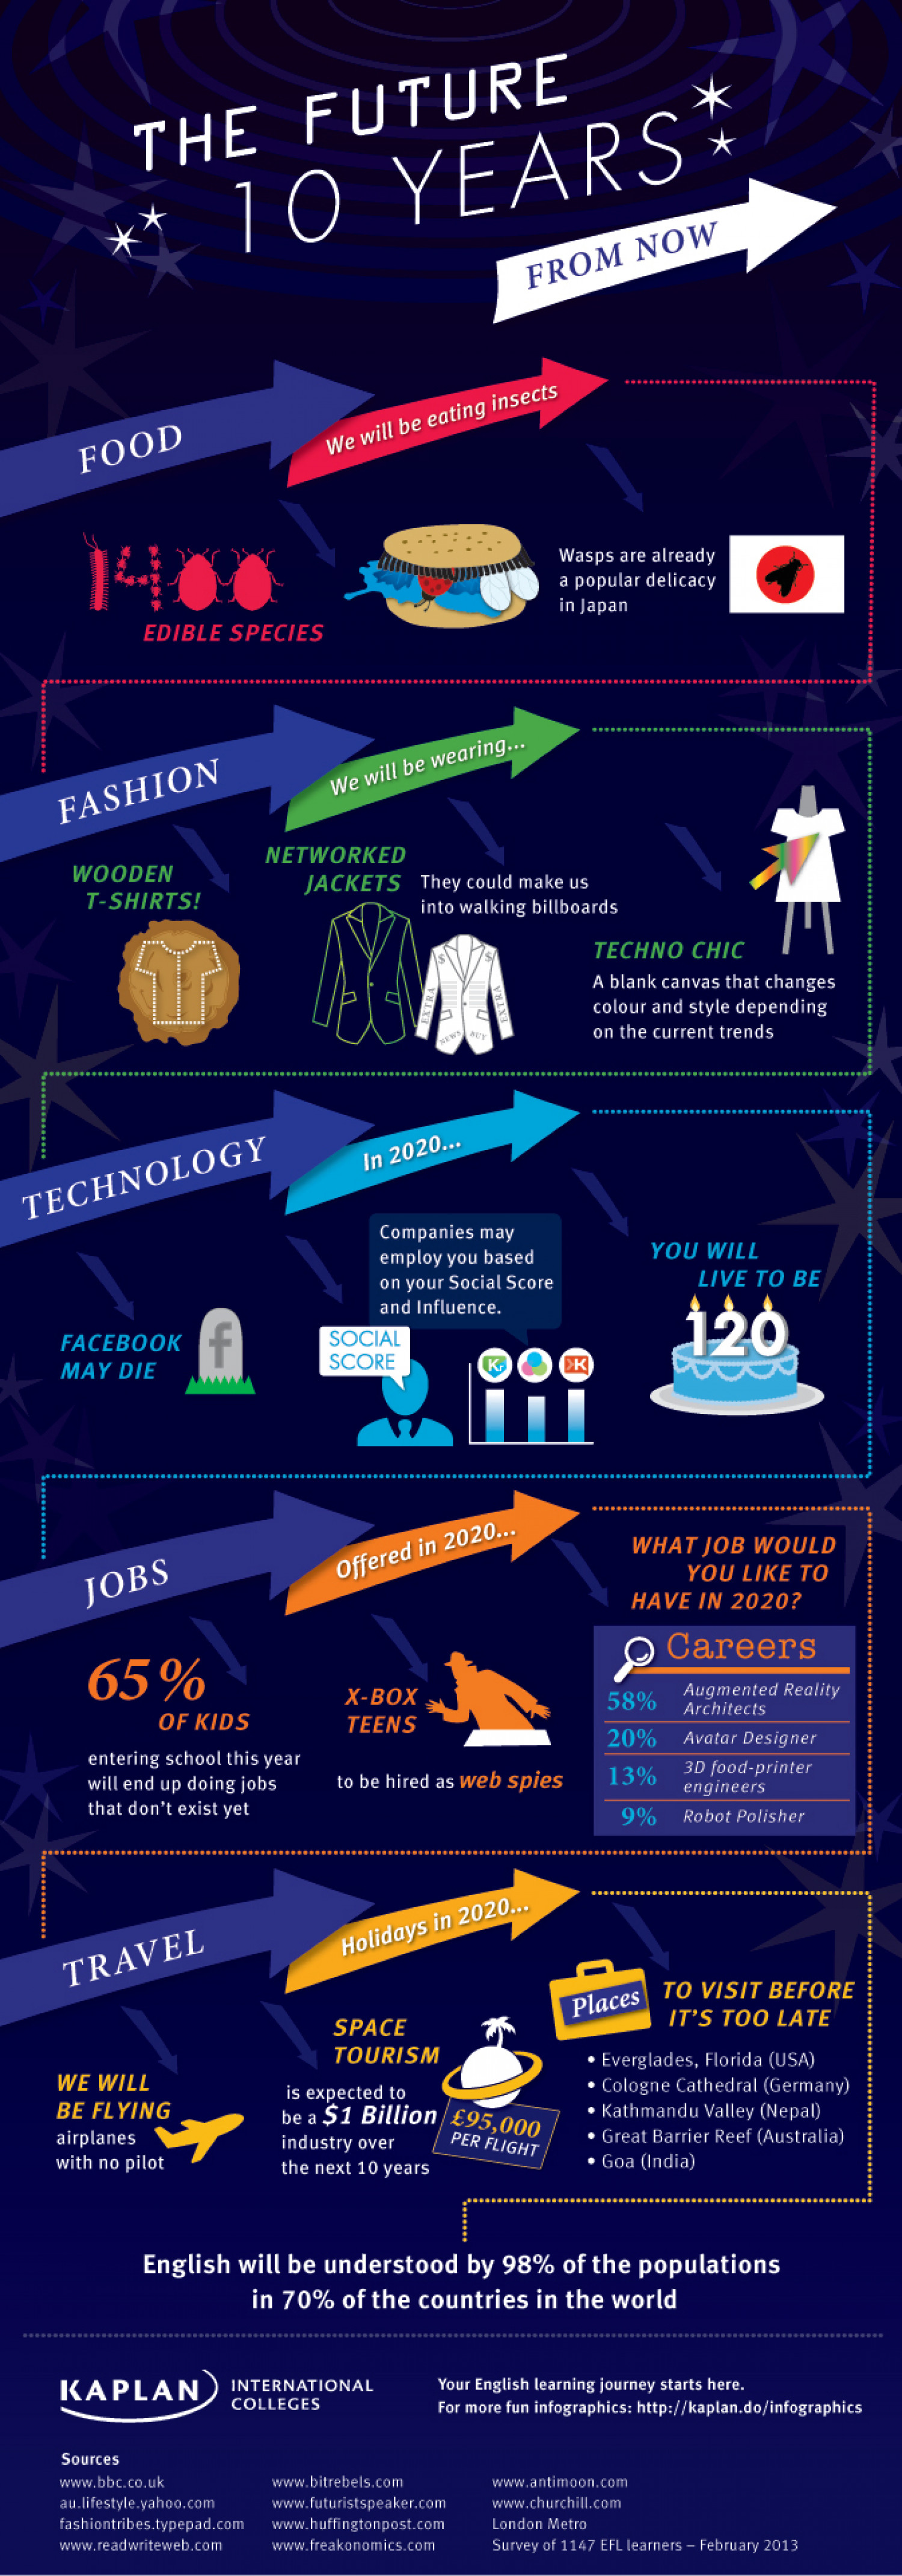 The Future 10 Years From Now Infographic